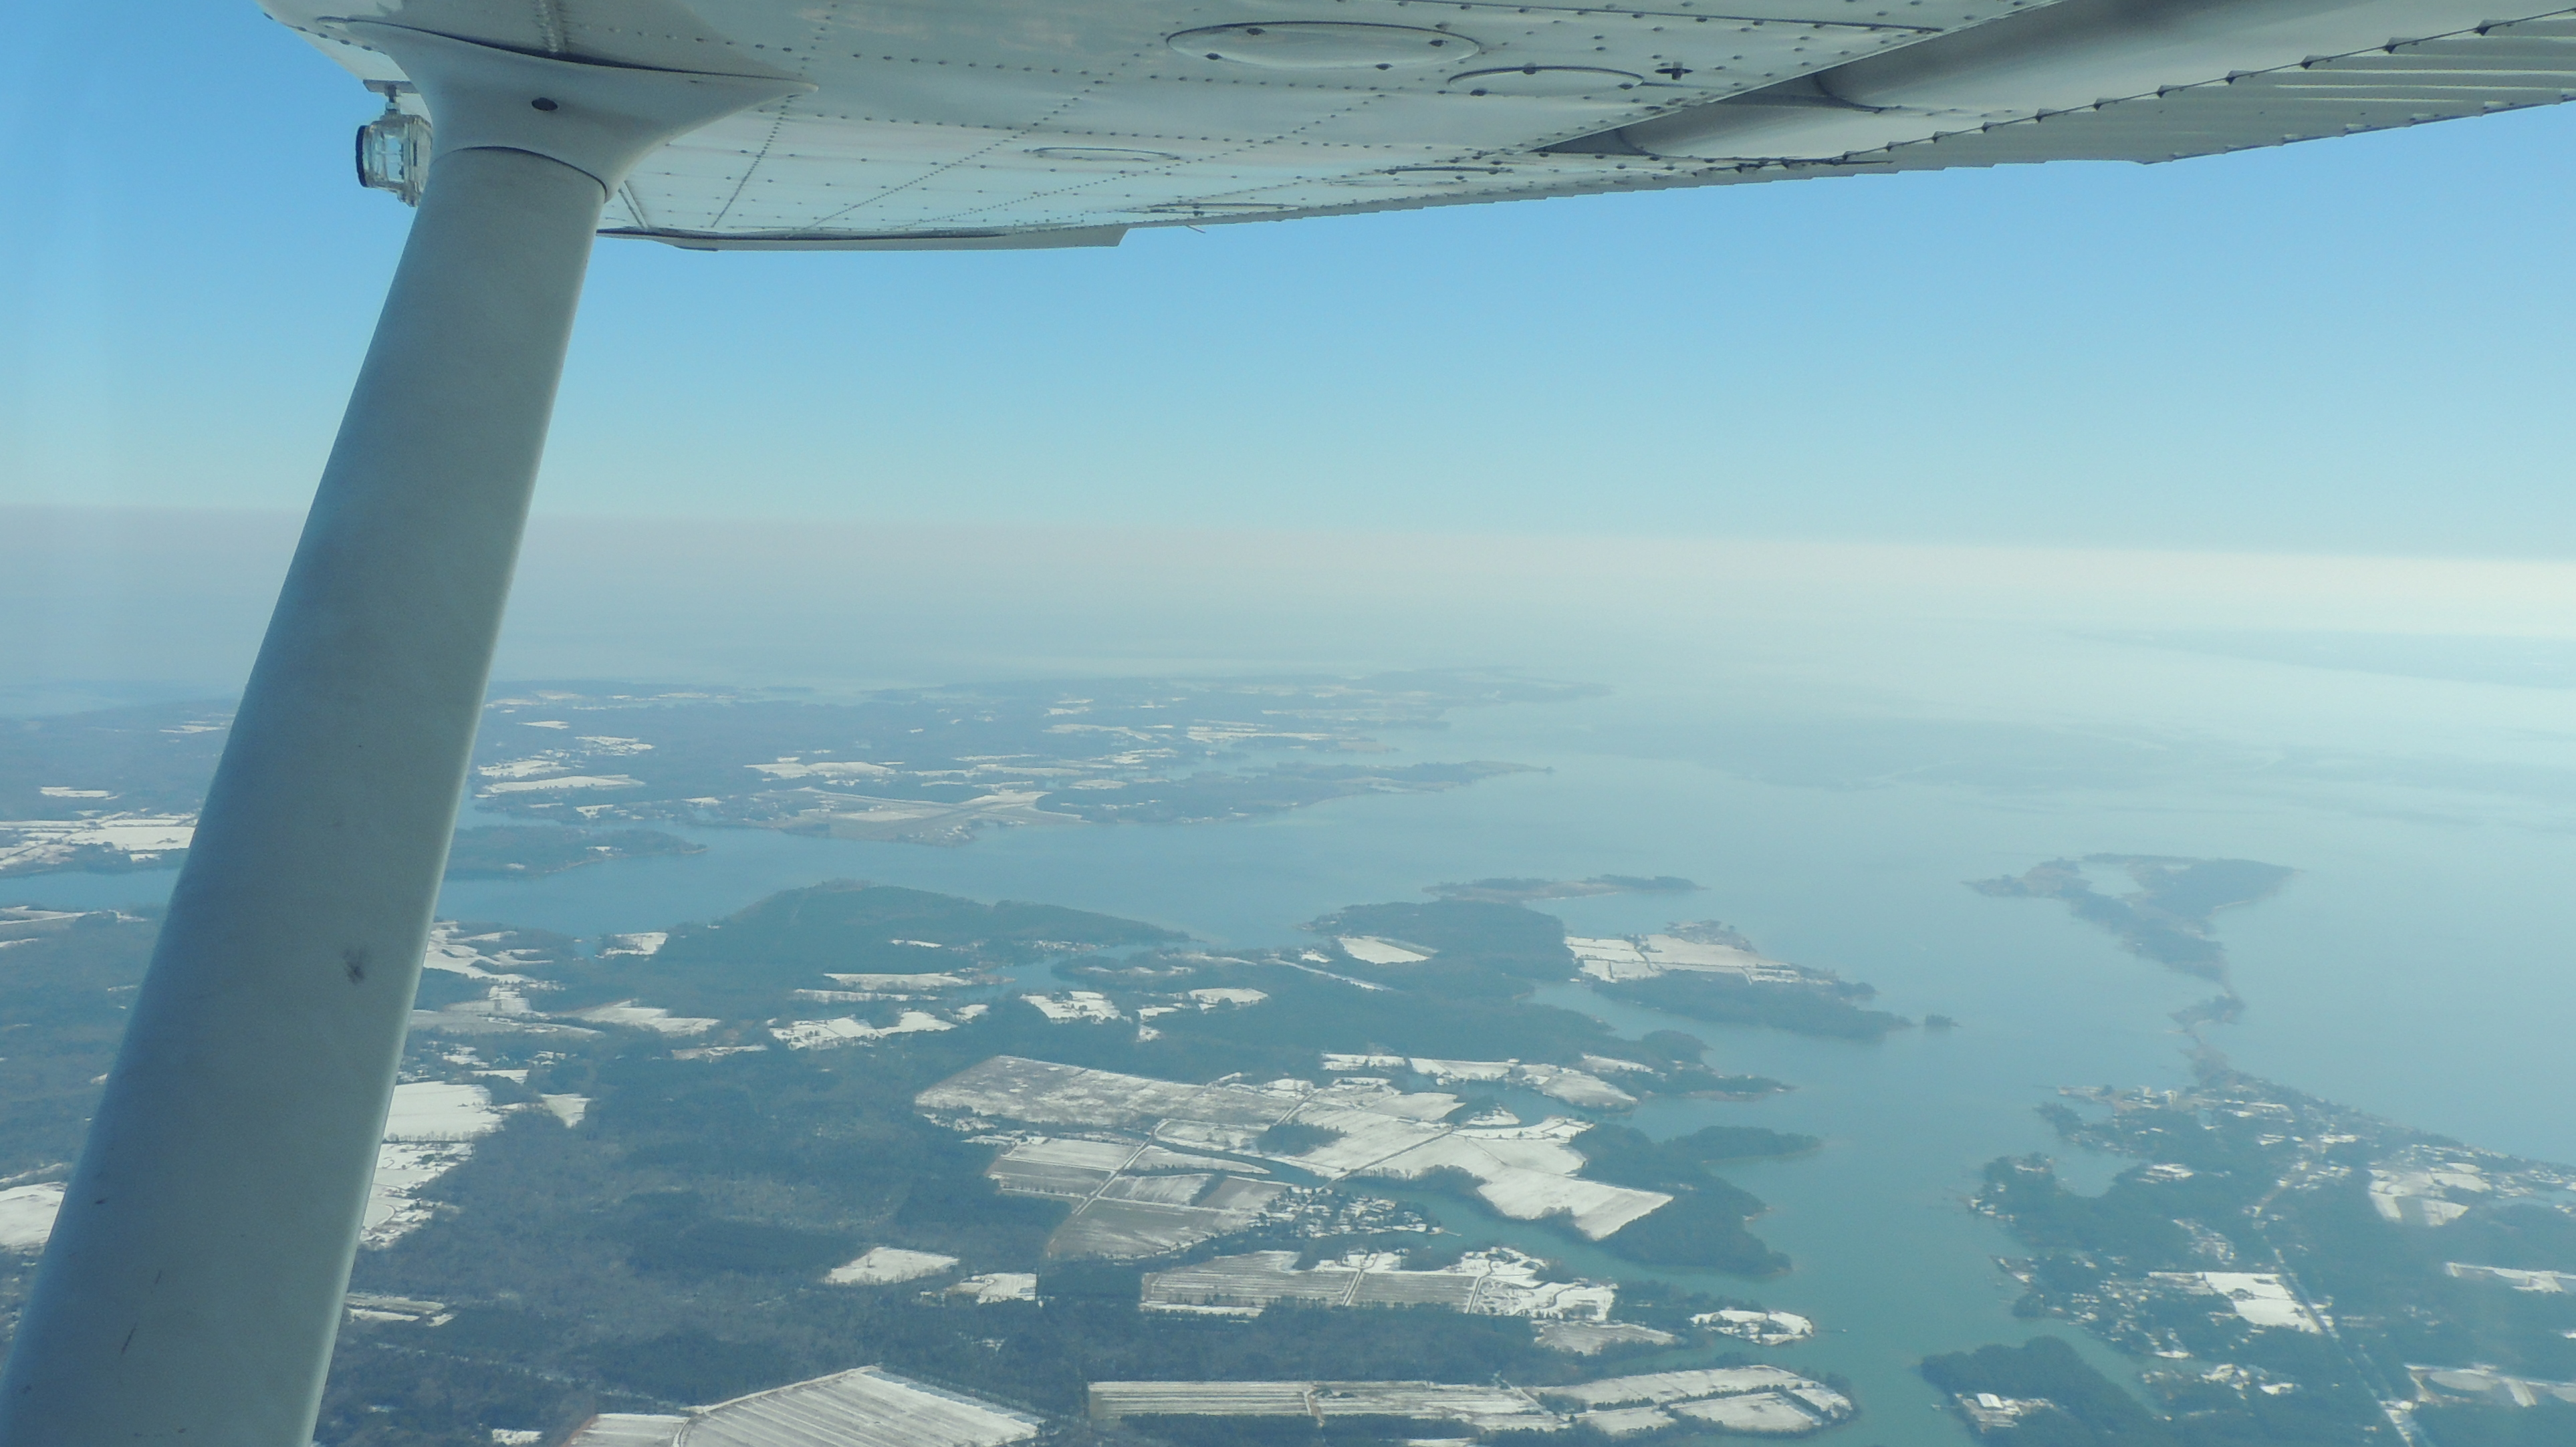 Over St. Marys County looking east towards Point Lookout